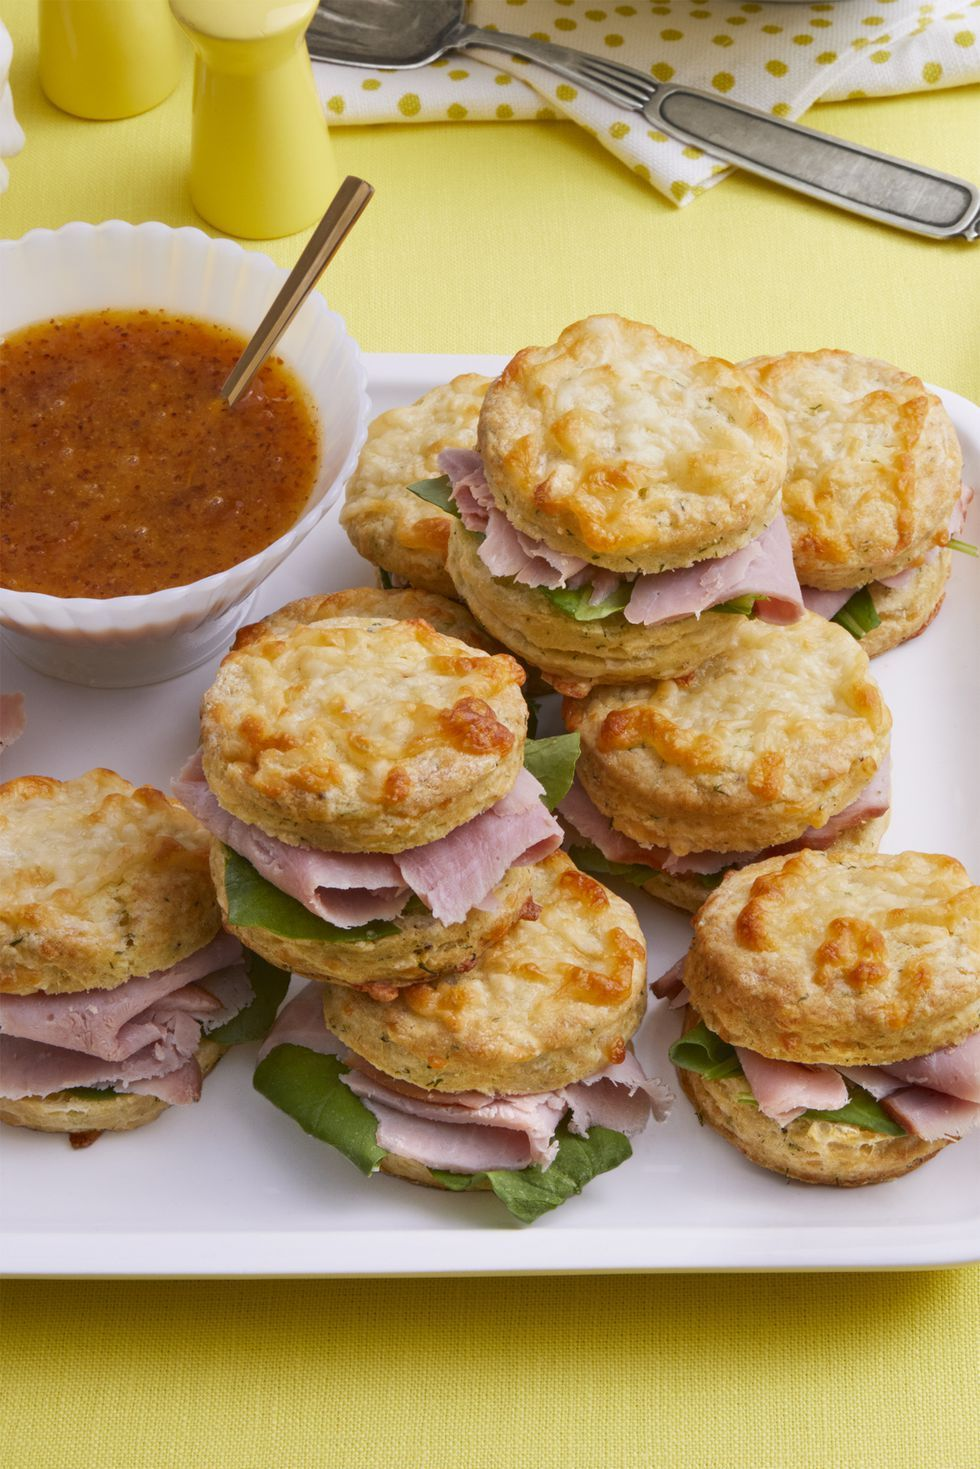 Discussion on this topic: Ham and Chutney Biscuits, ham-and-chutney-biscuits/